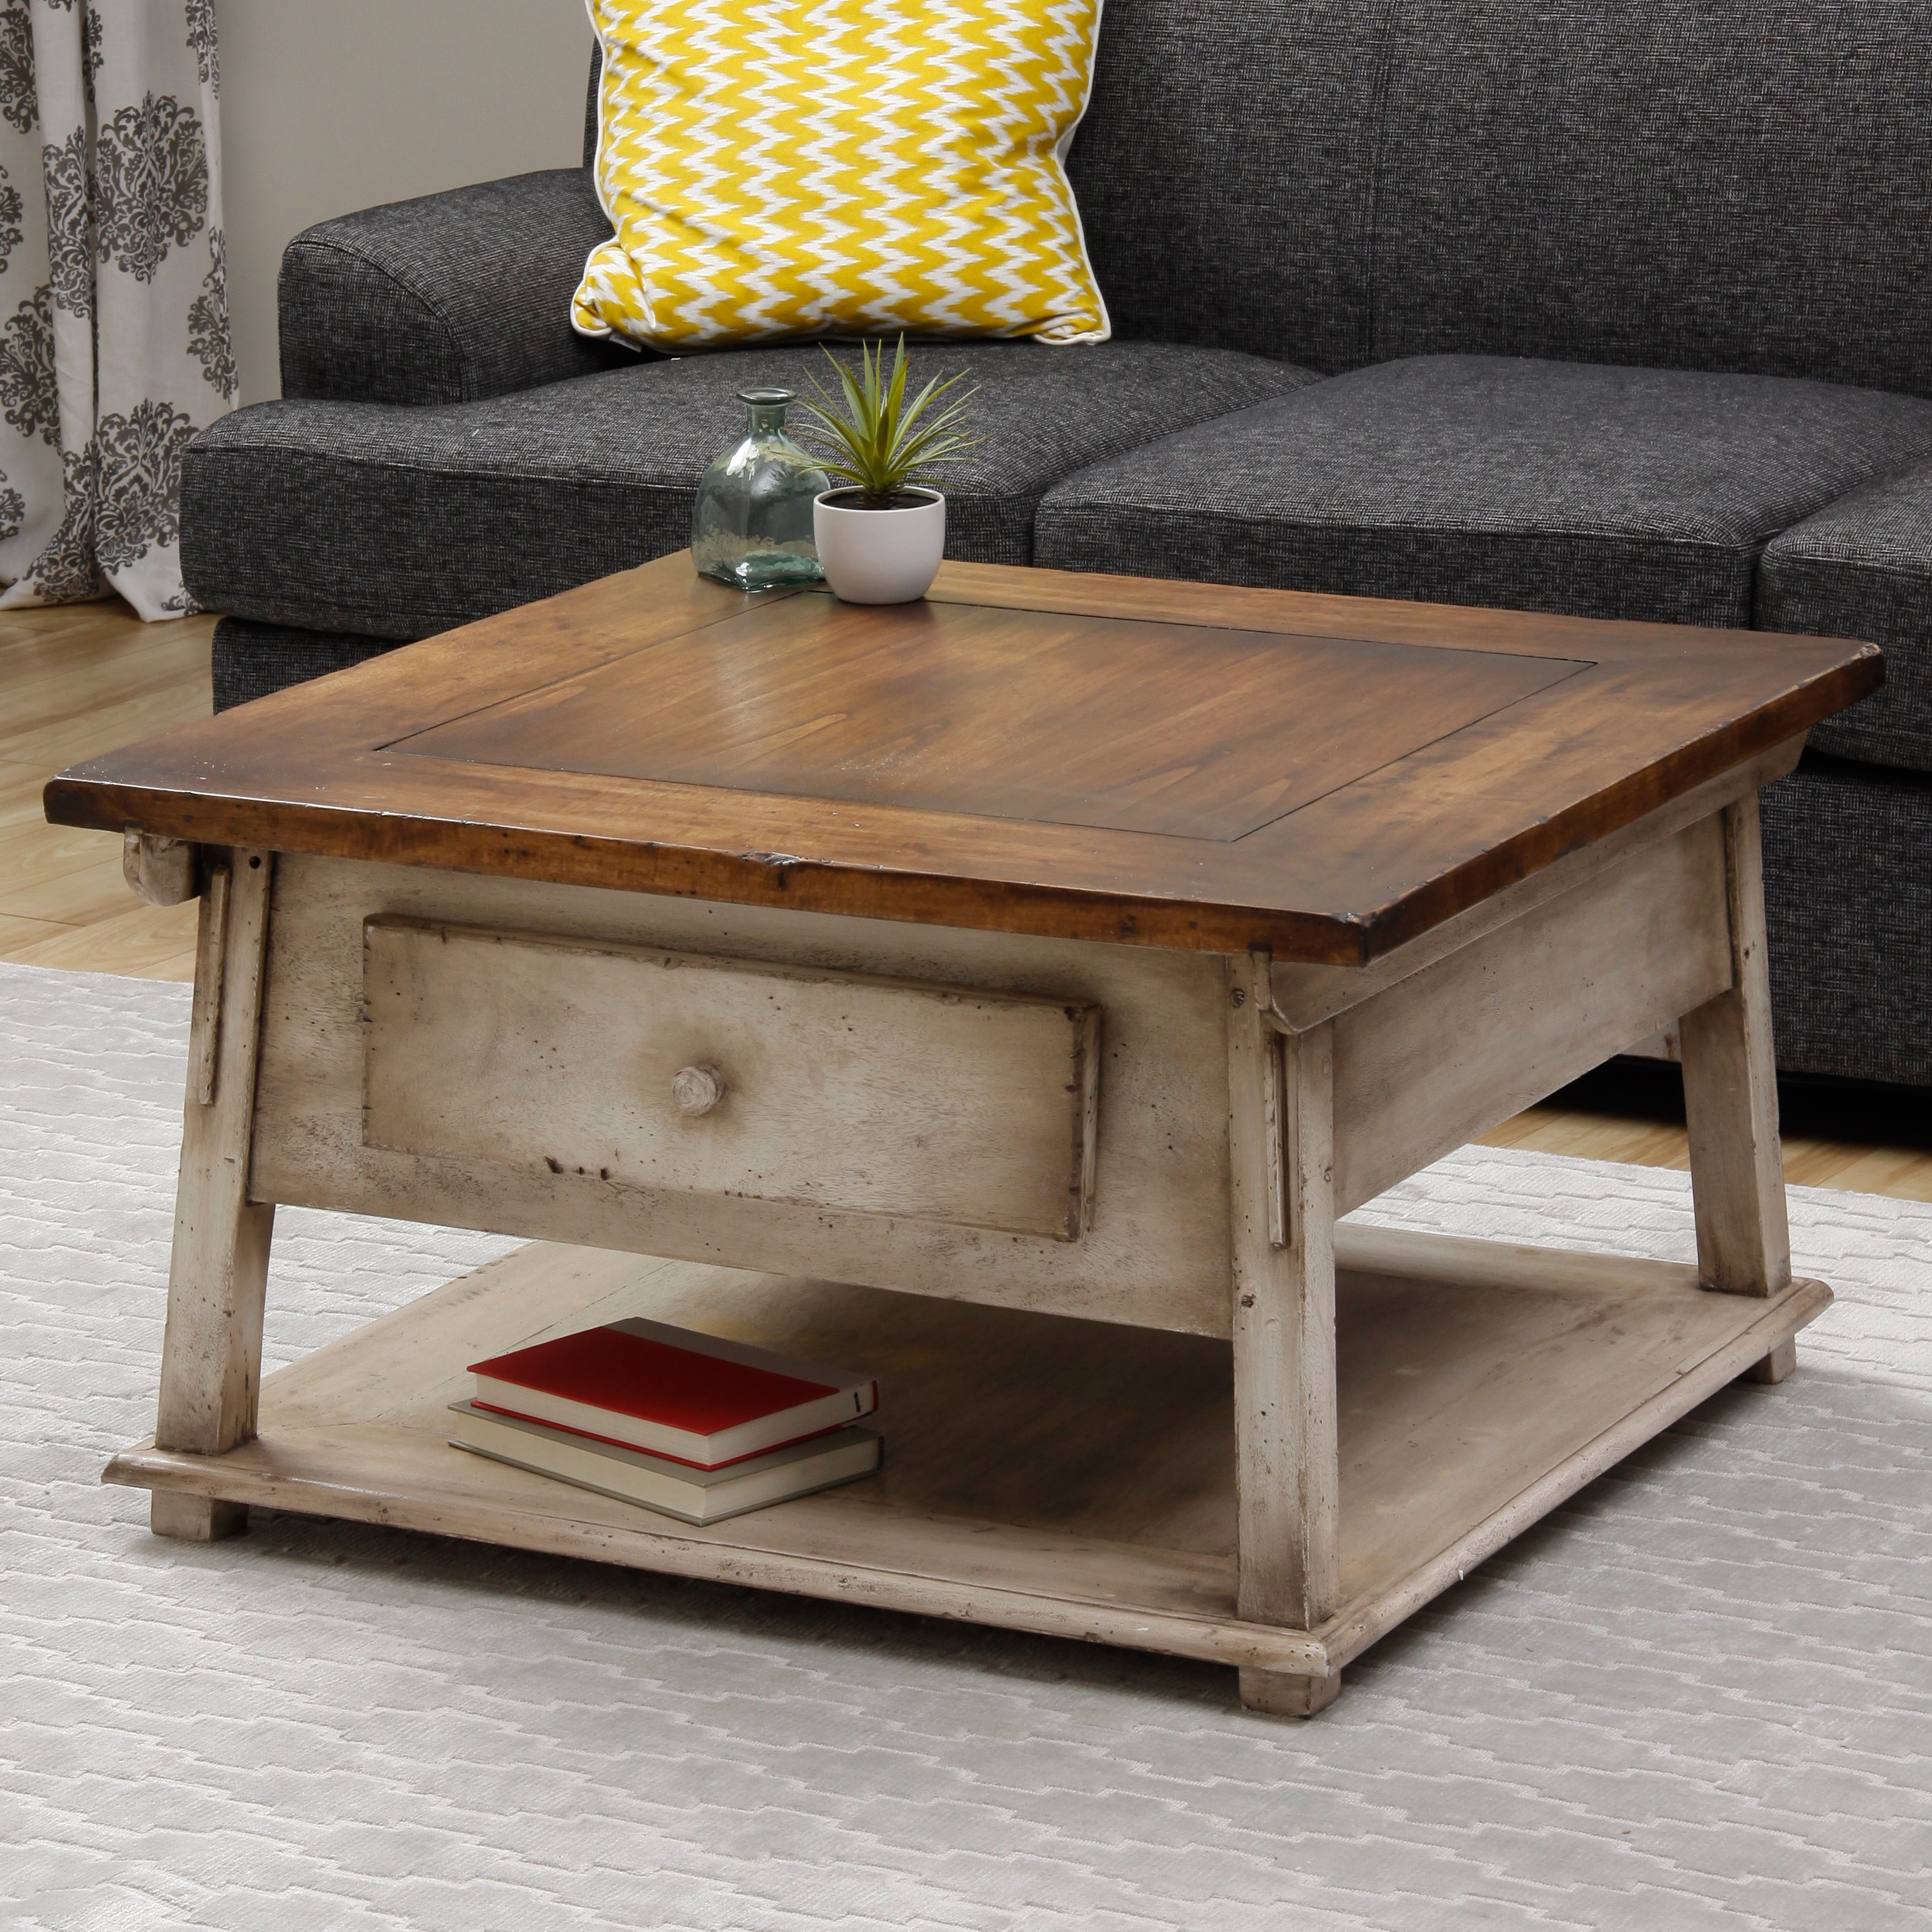 Sam shack coffee table indonesia overstock shopping for Top rated coffee tables